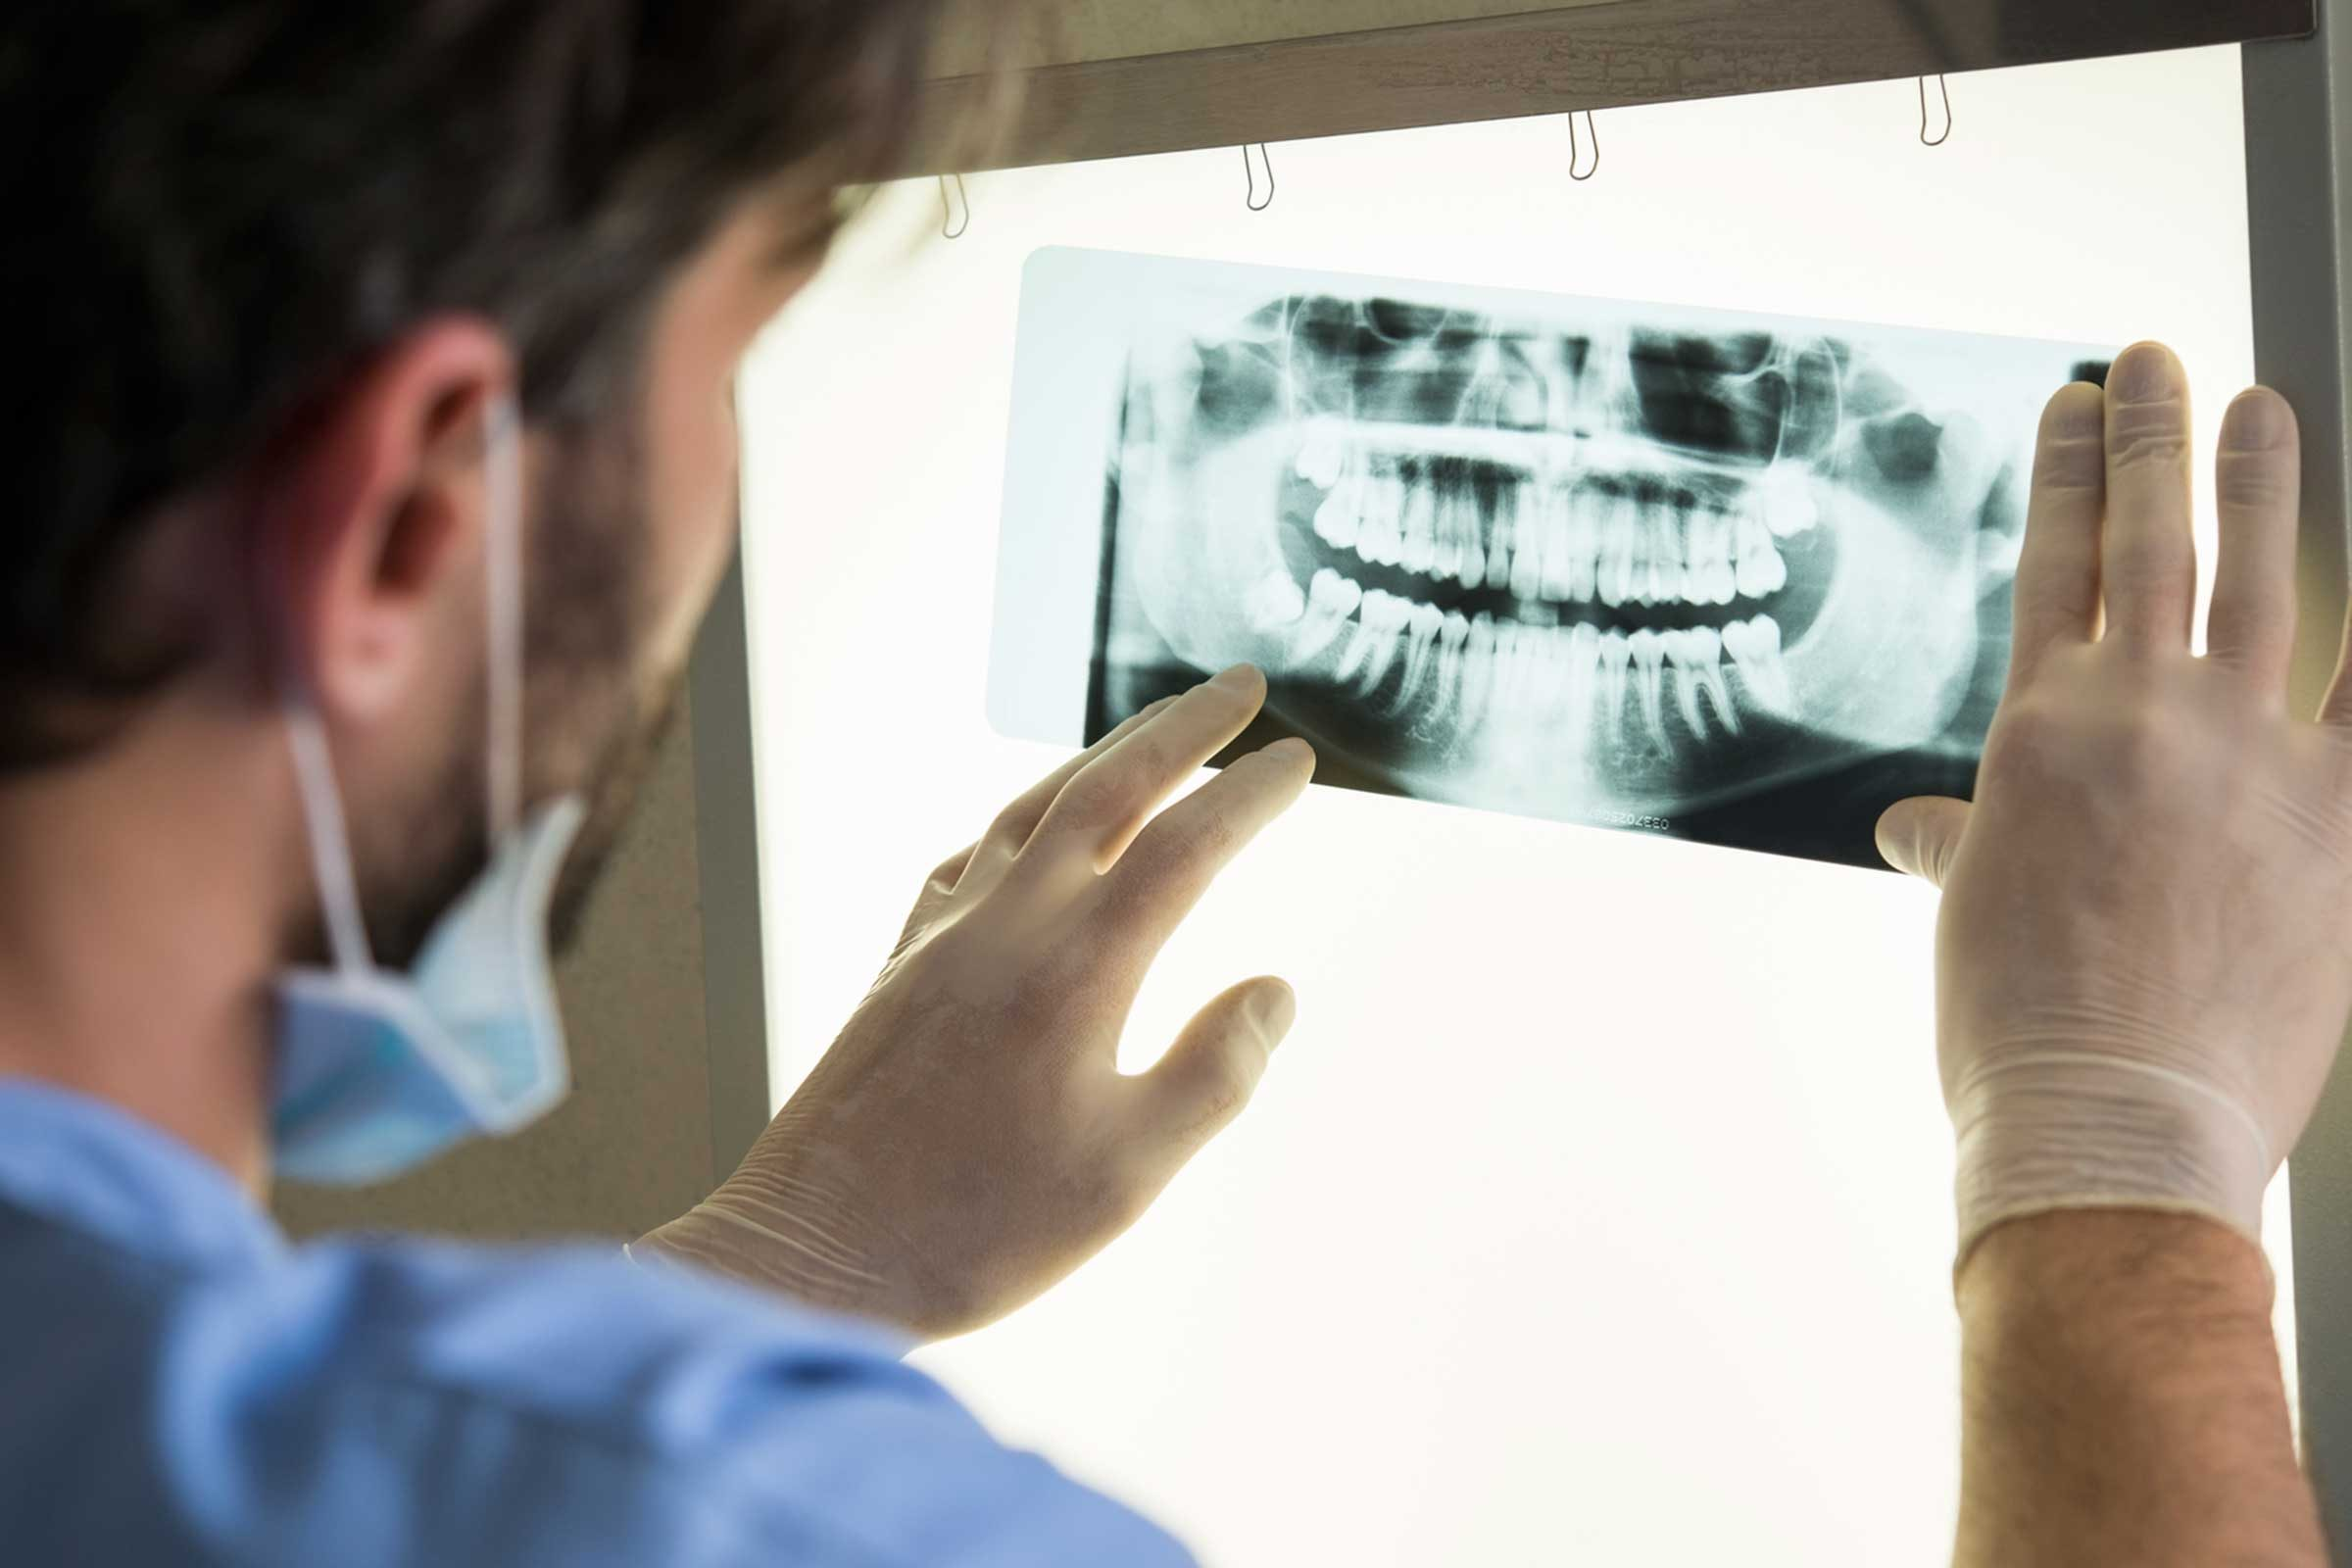 Cavity Symptoms You Shouldn't Ignore | Reader's Digest